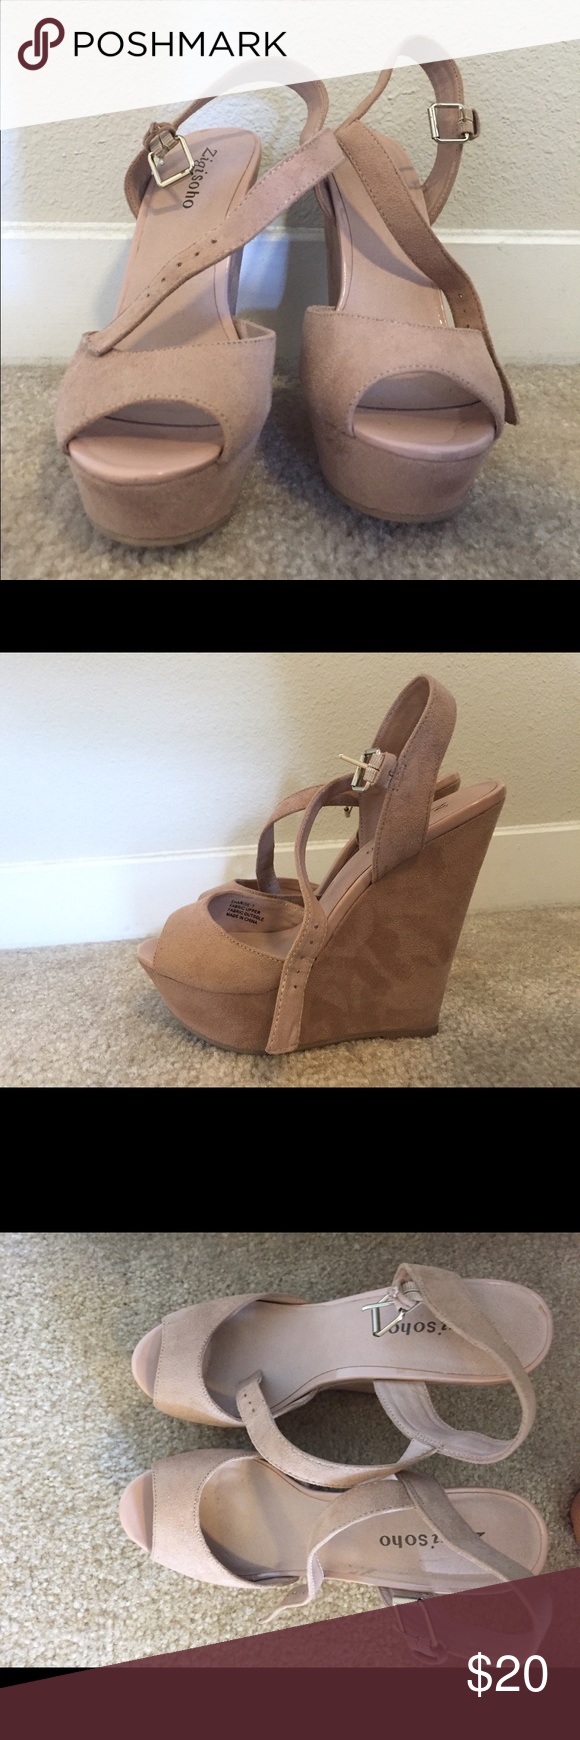 Nude wedges Worn only once as a bridesmaid. Ladies these shoes were great for wearing all throughout the ceremony and dancing all night long! Very comfortable! Shoes Wedges